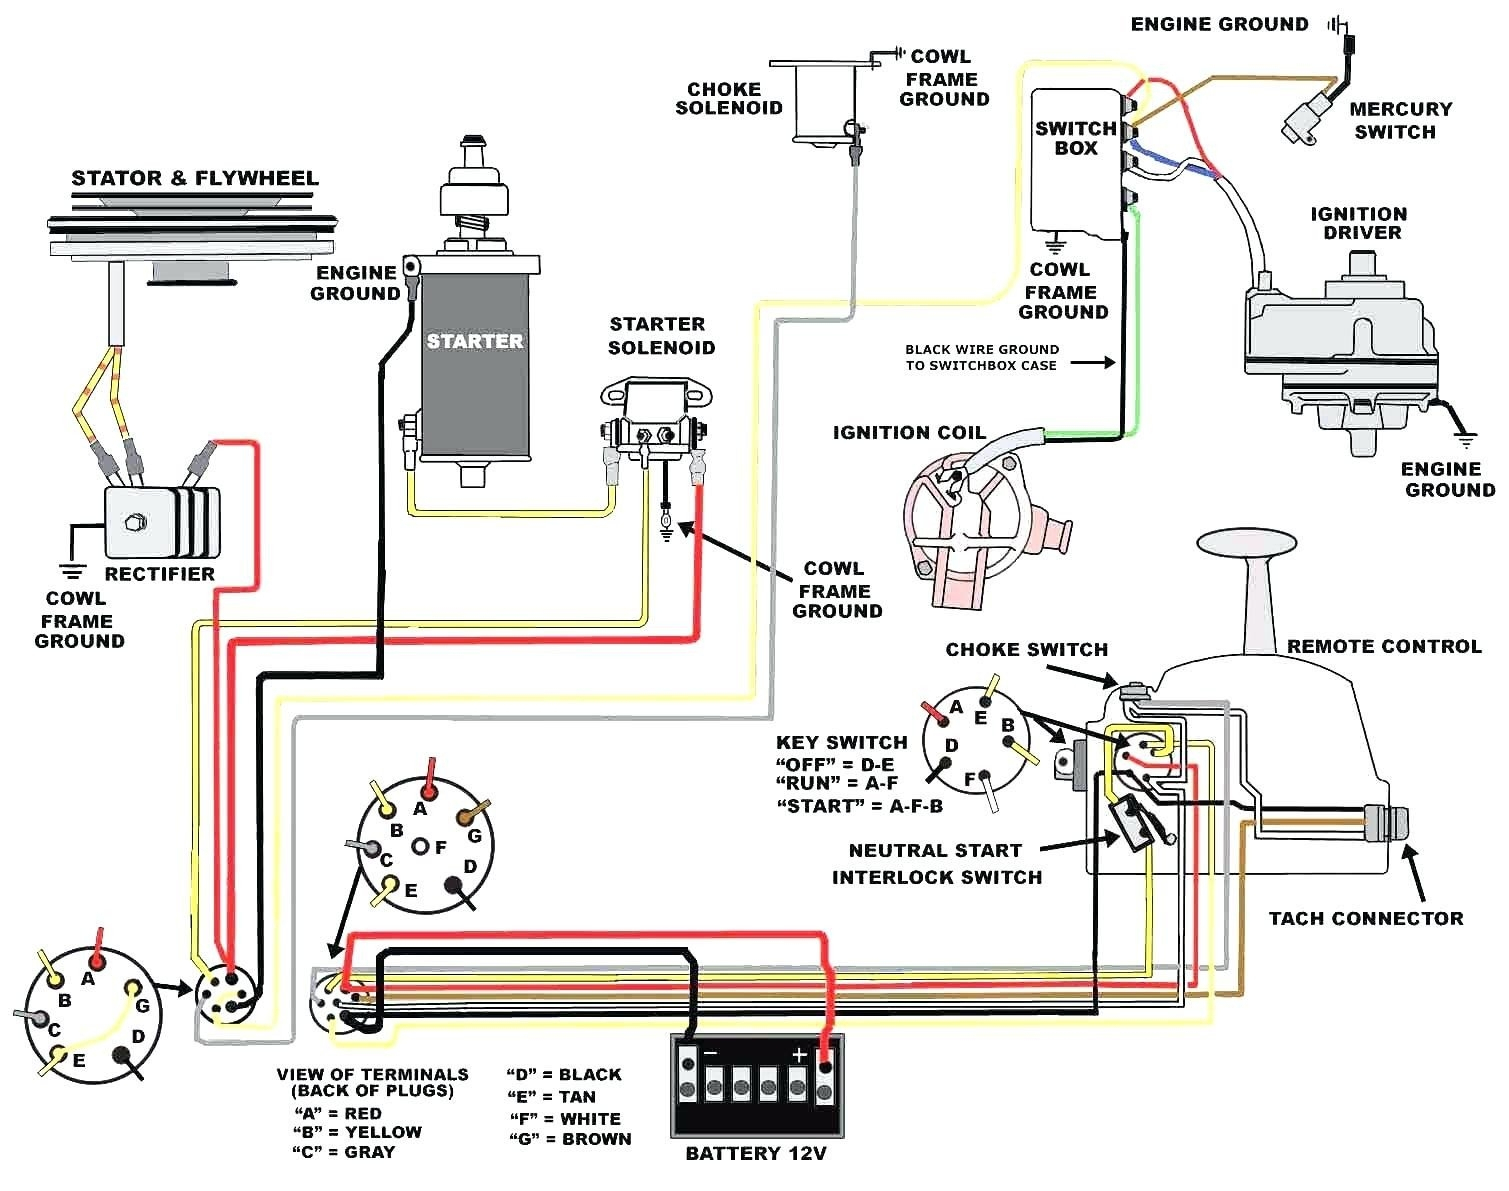 Universal Ignition Wiring Diagram | Manual E-Books - Universal Ignition Switch Wiring Diagram